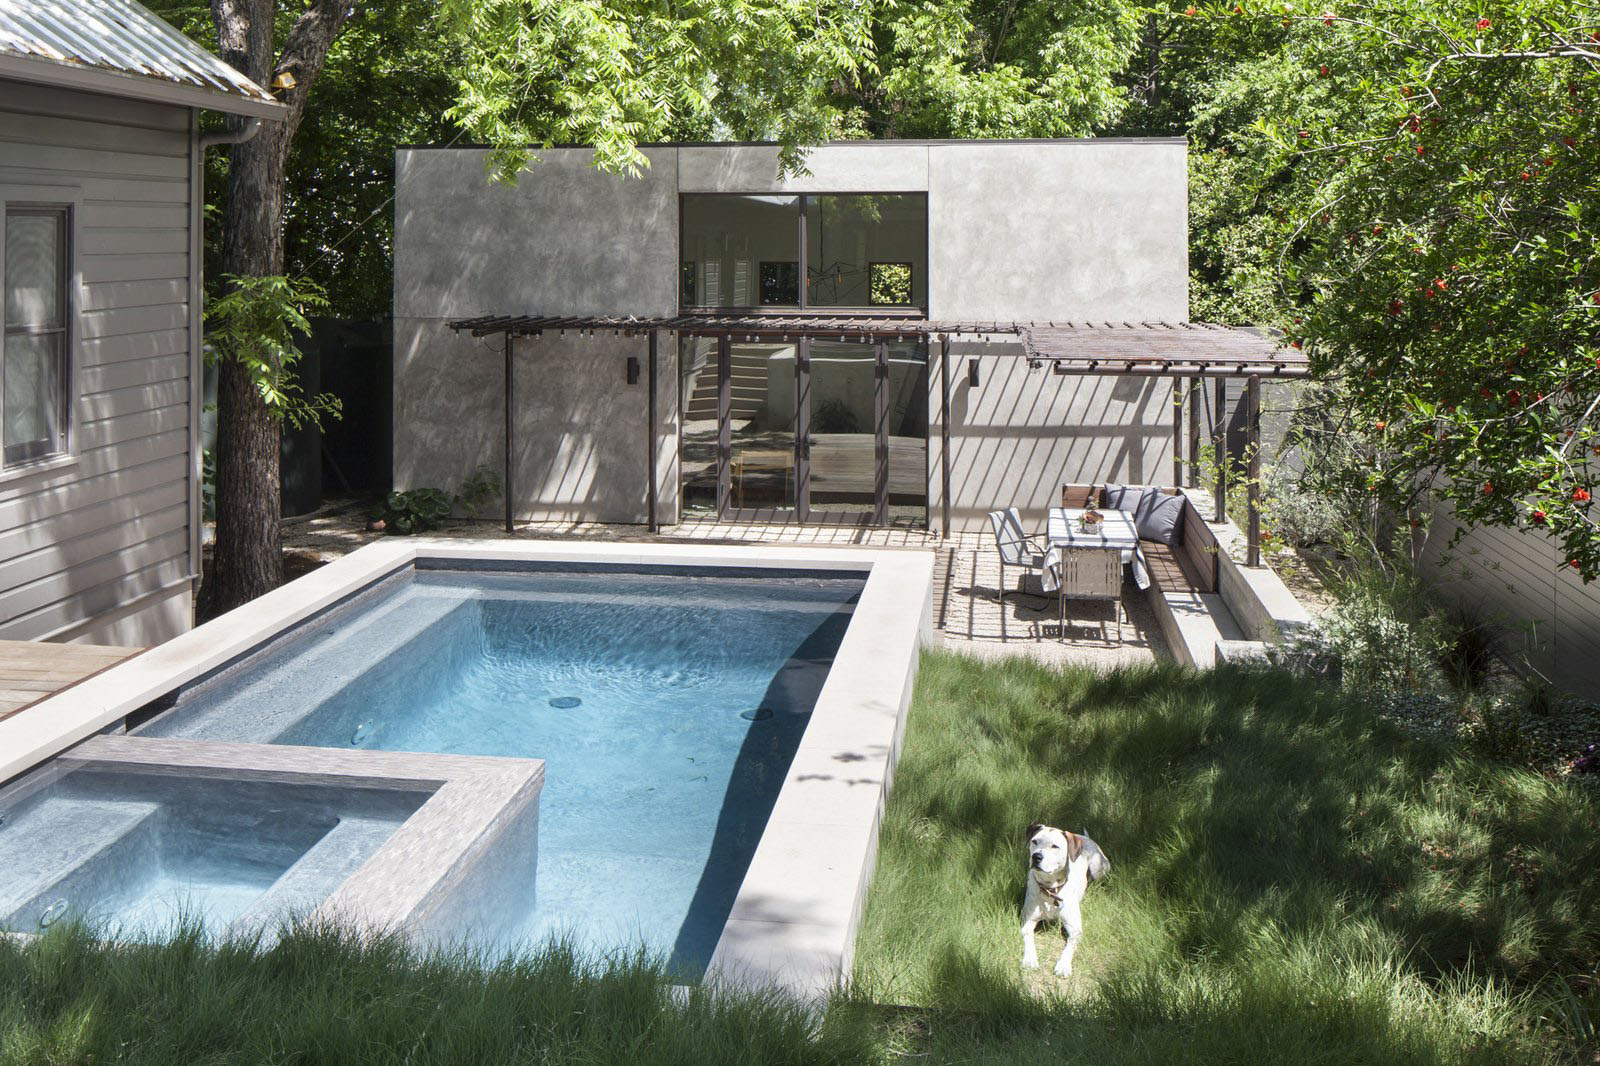 double height casita and new pool added to a small backyard